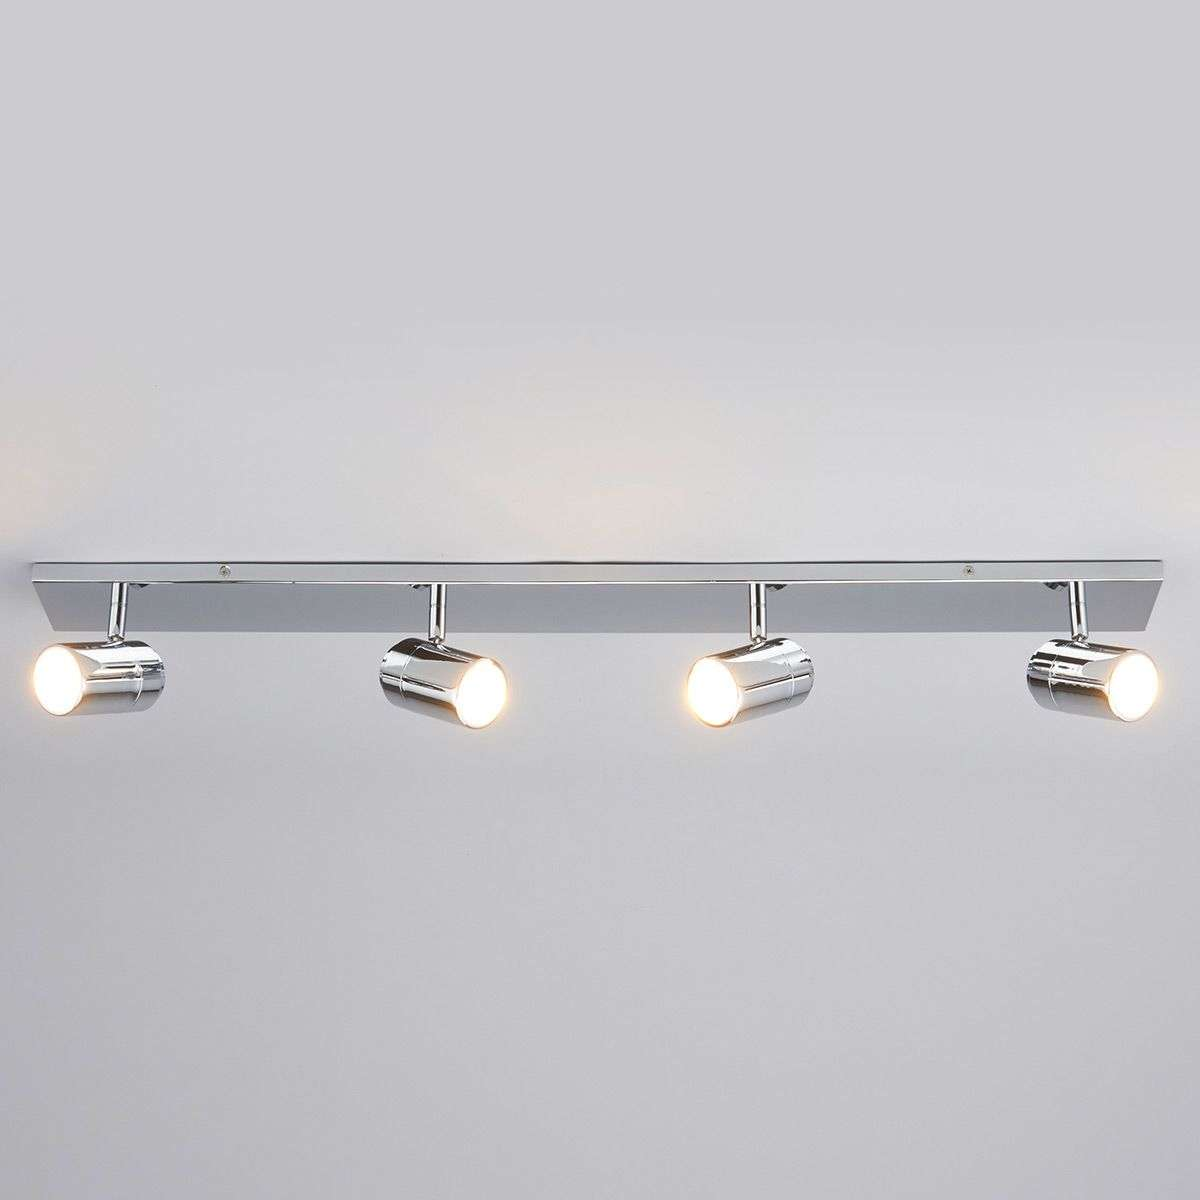 Dejan 4-bulb bathroom ceiling light | Lights.co.uk